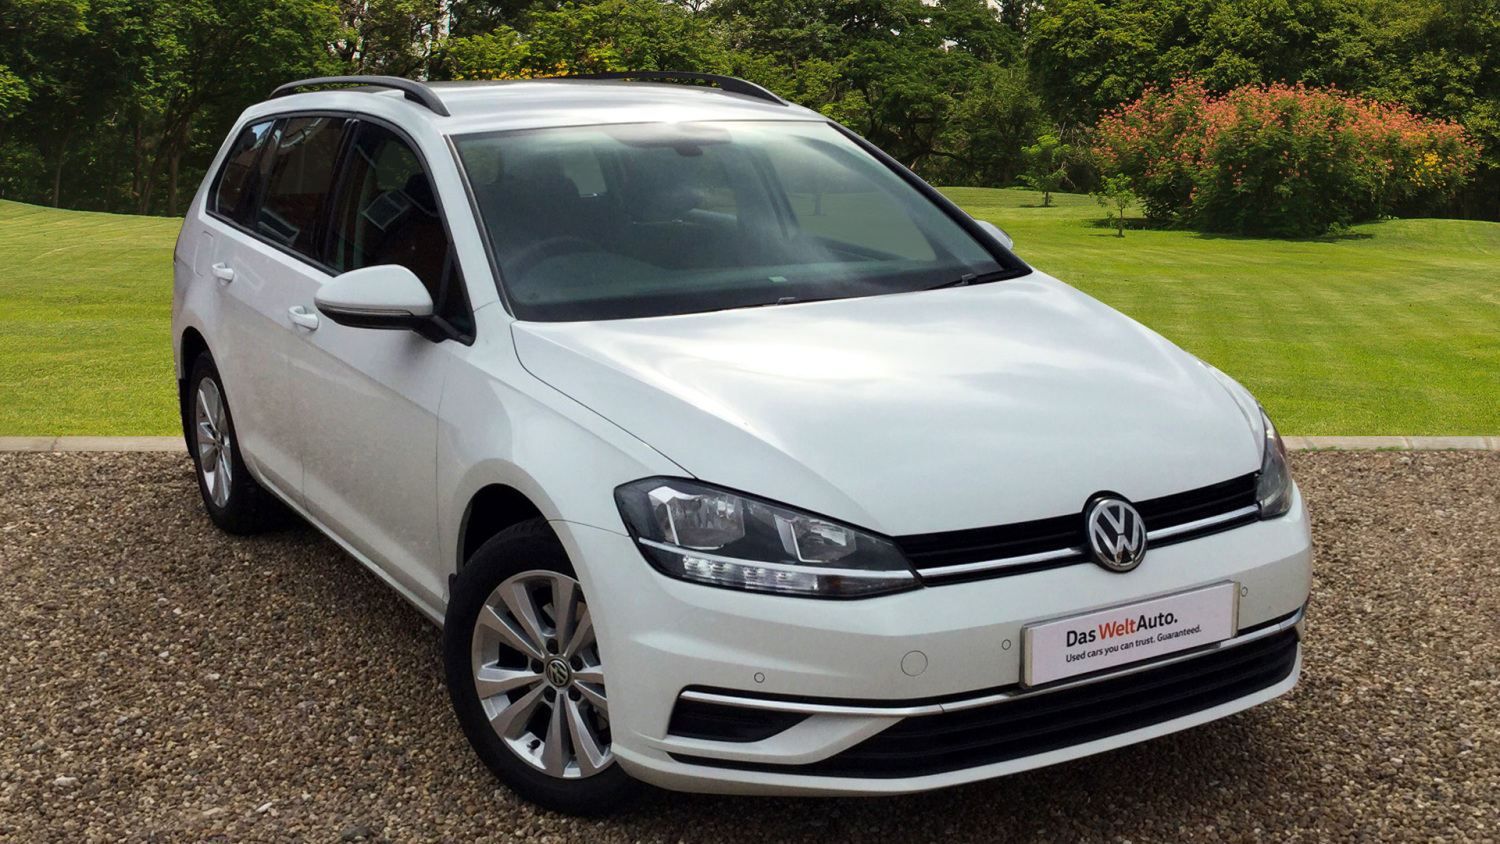 used volkswagen golf 1 6 tdi se 5dr nav diesel estate for sale bristol street motors. Black Bedroom Furniture Sets. Home Design Ideas